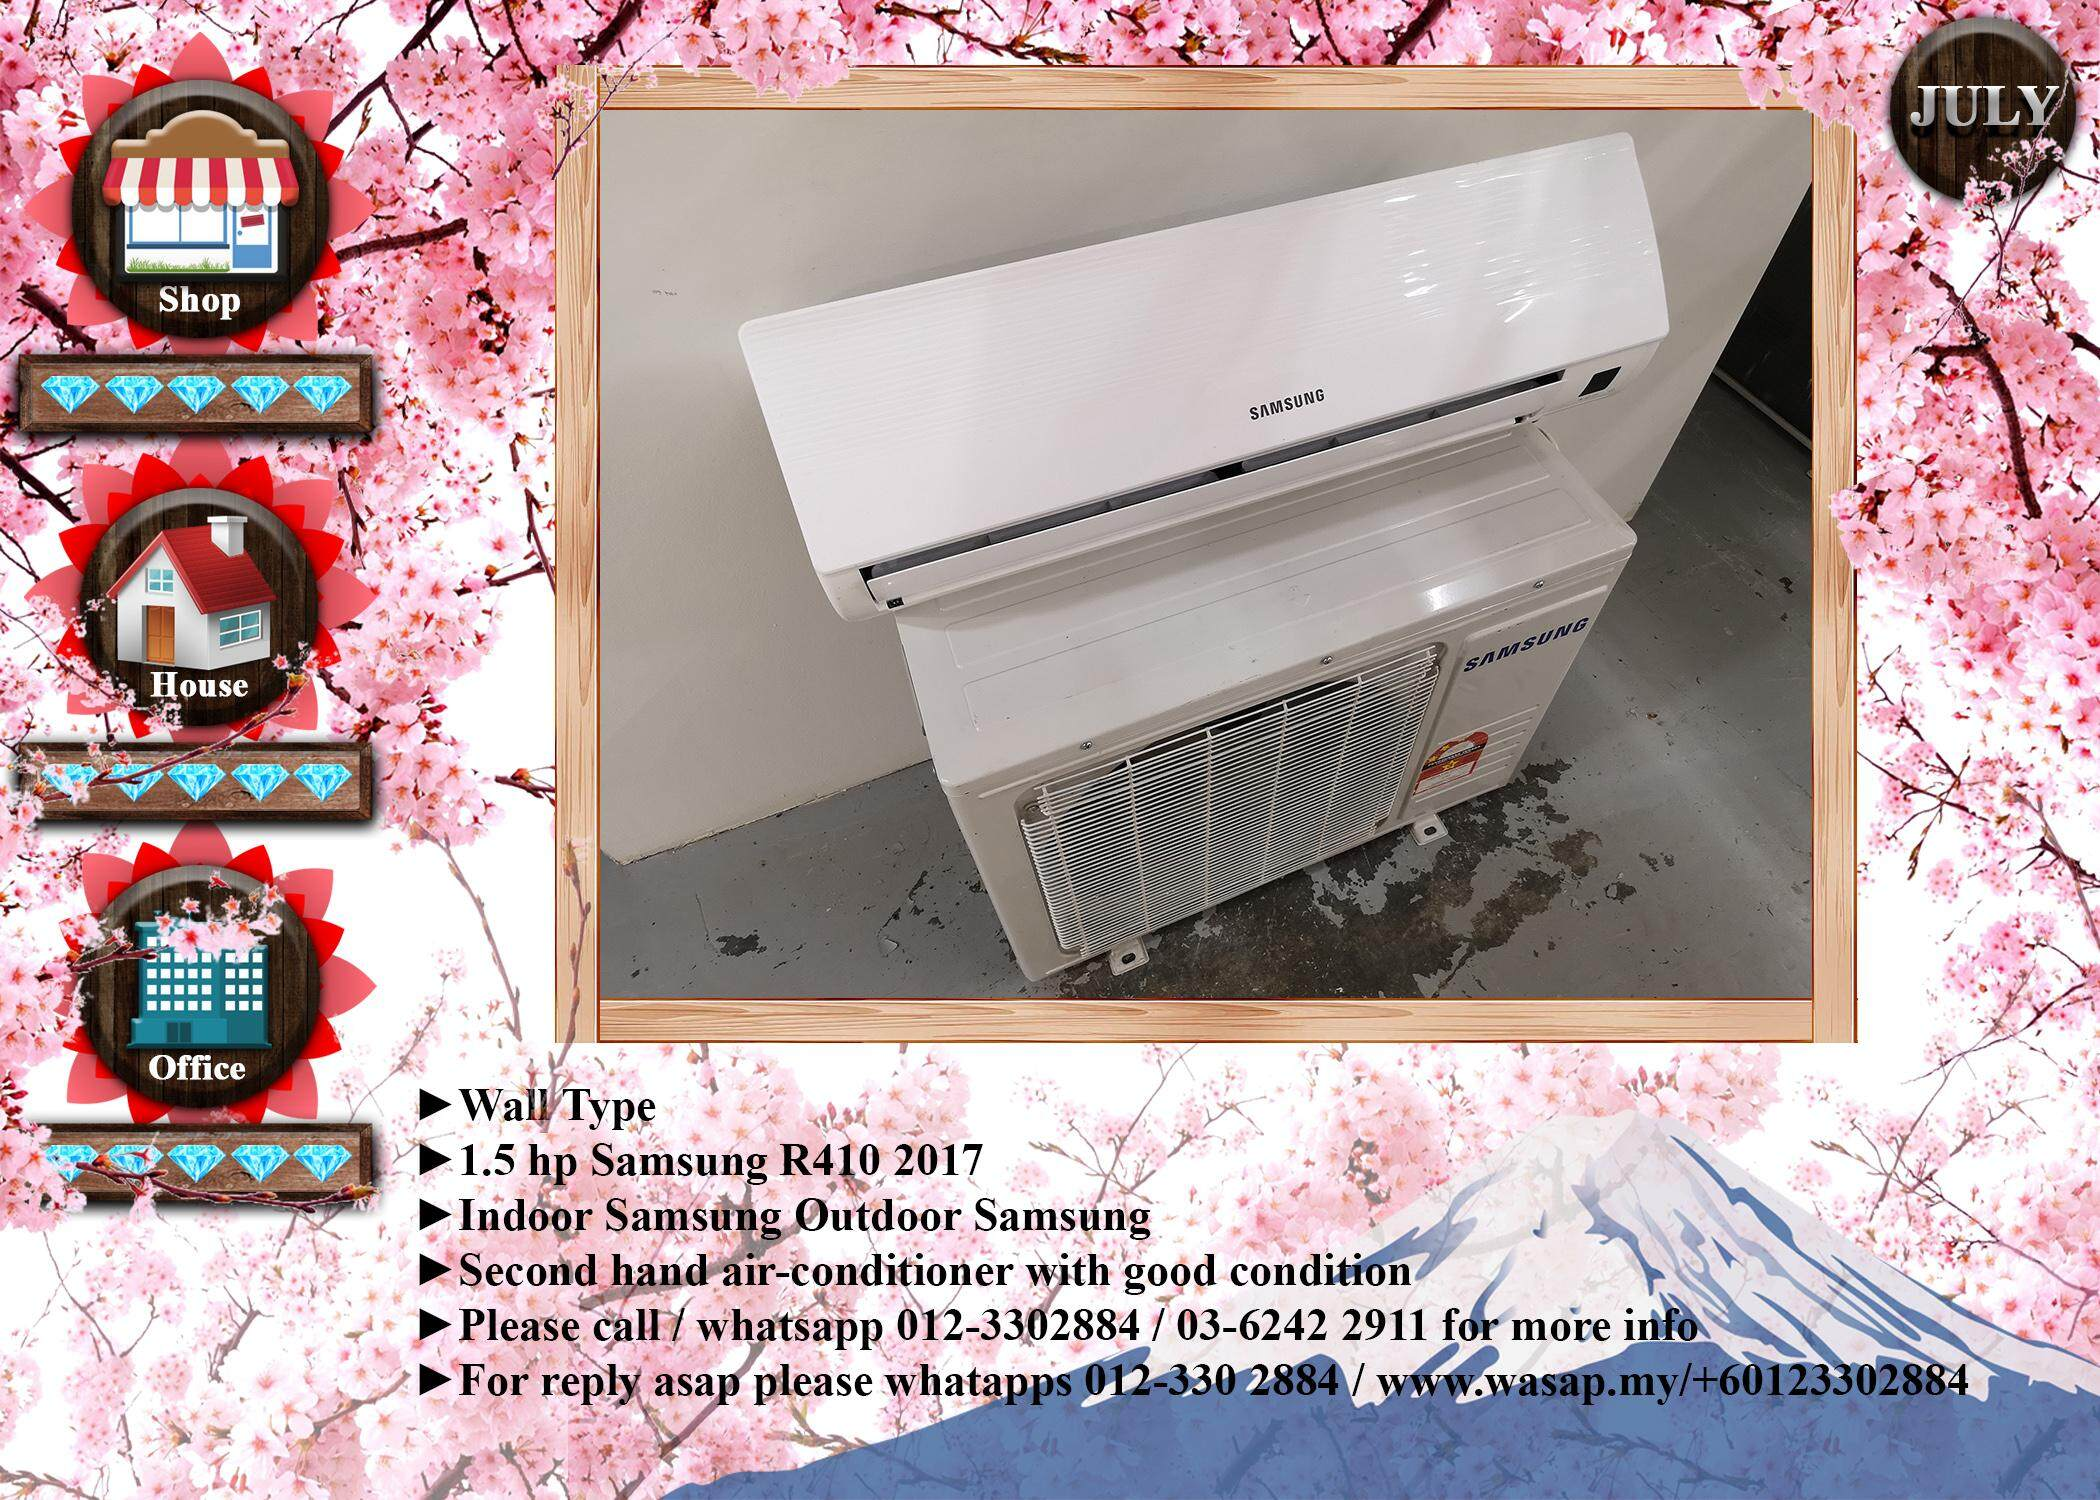 Samsung 1.5hp Wall Type Second Type 2017 R410 Air Conditioner aircon / PRICE INCLUDED INSTALLATION SERVICE